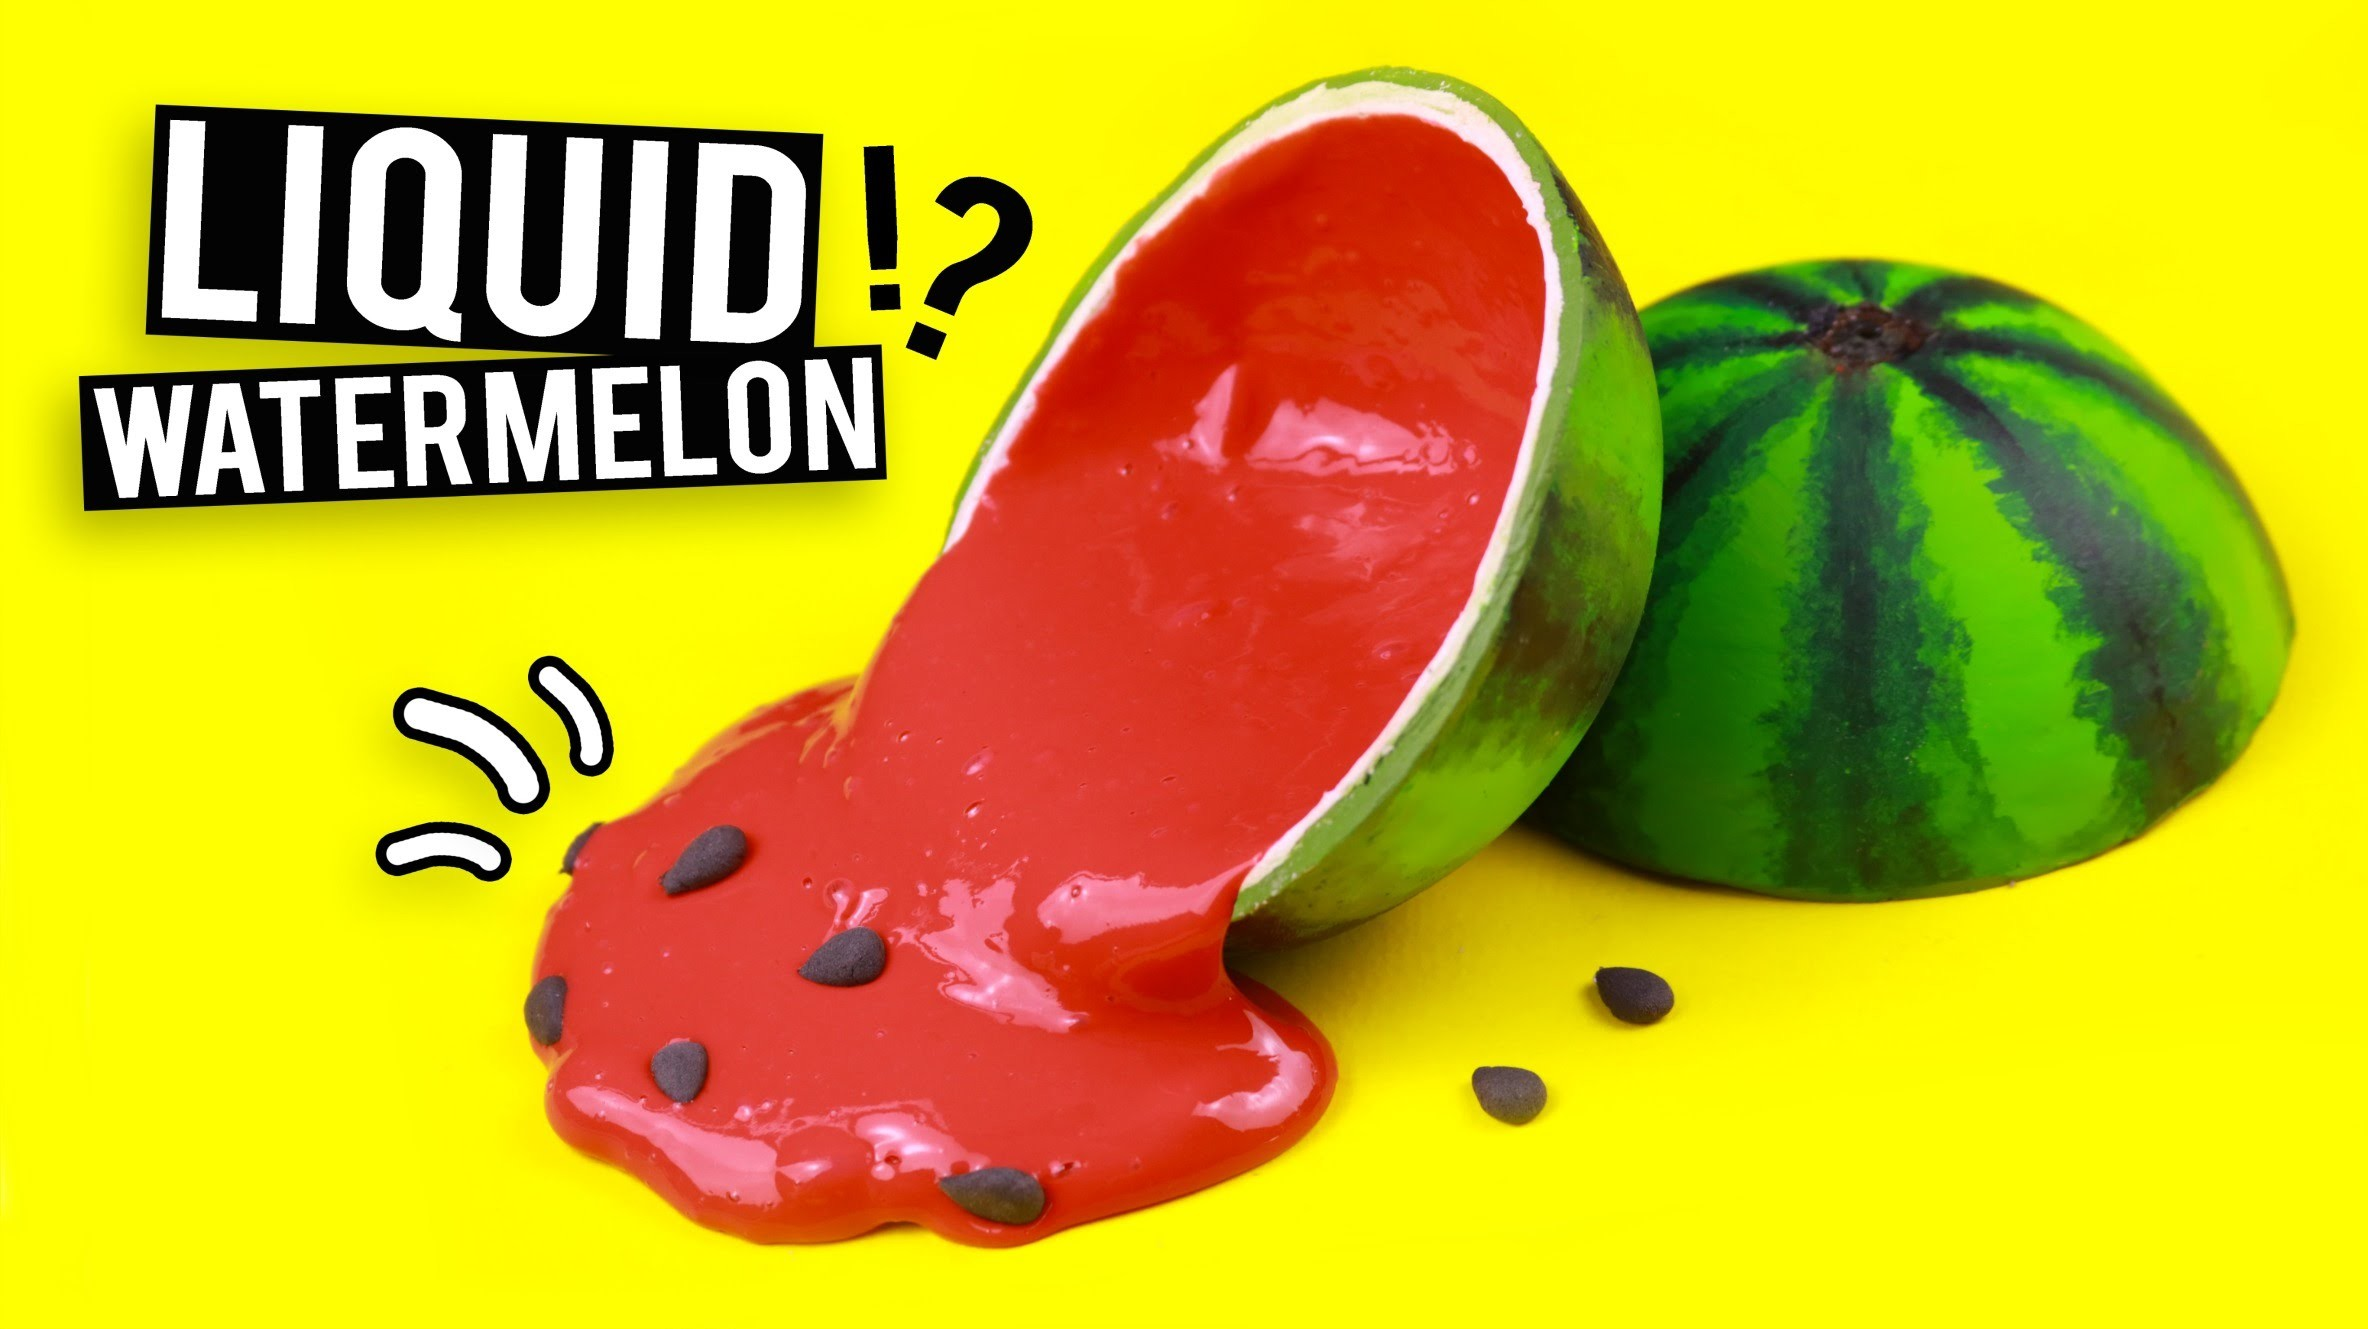 DIY LIQUID Watermelon!